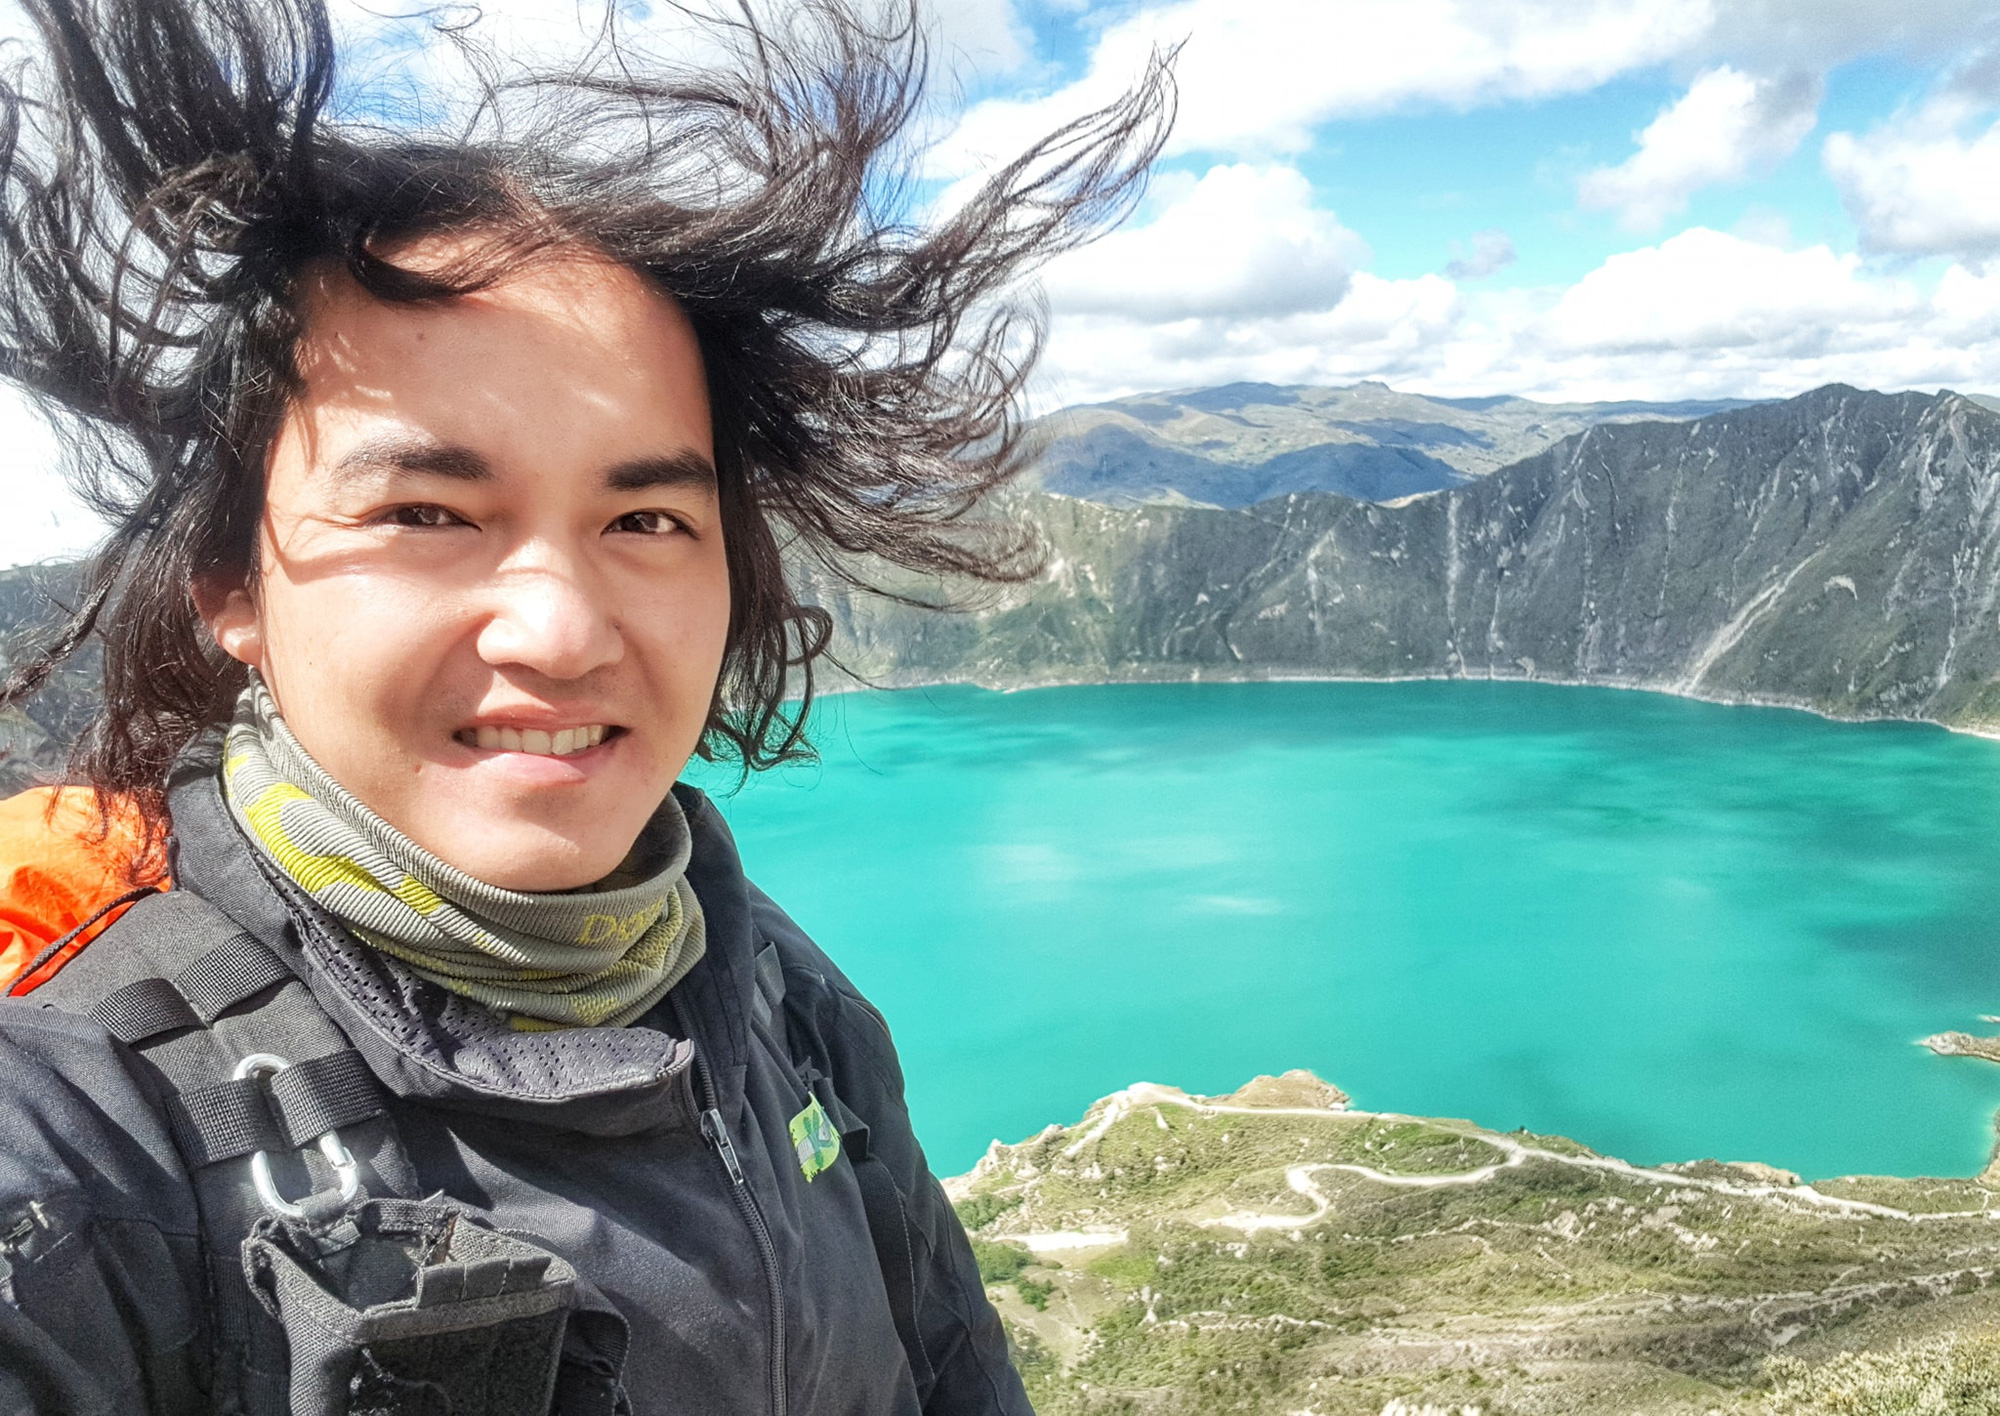 Vietnamese globetrotter Tran Dang Dang Khoa during his journey around the world is seen in a photo posted to his verified Facebook account.